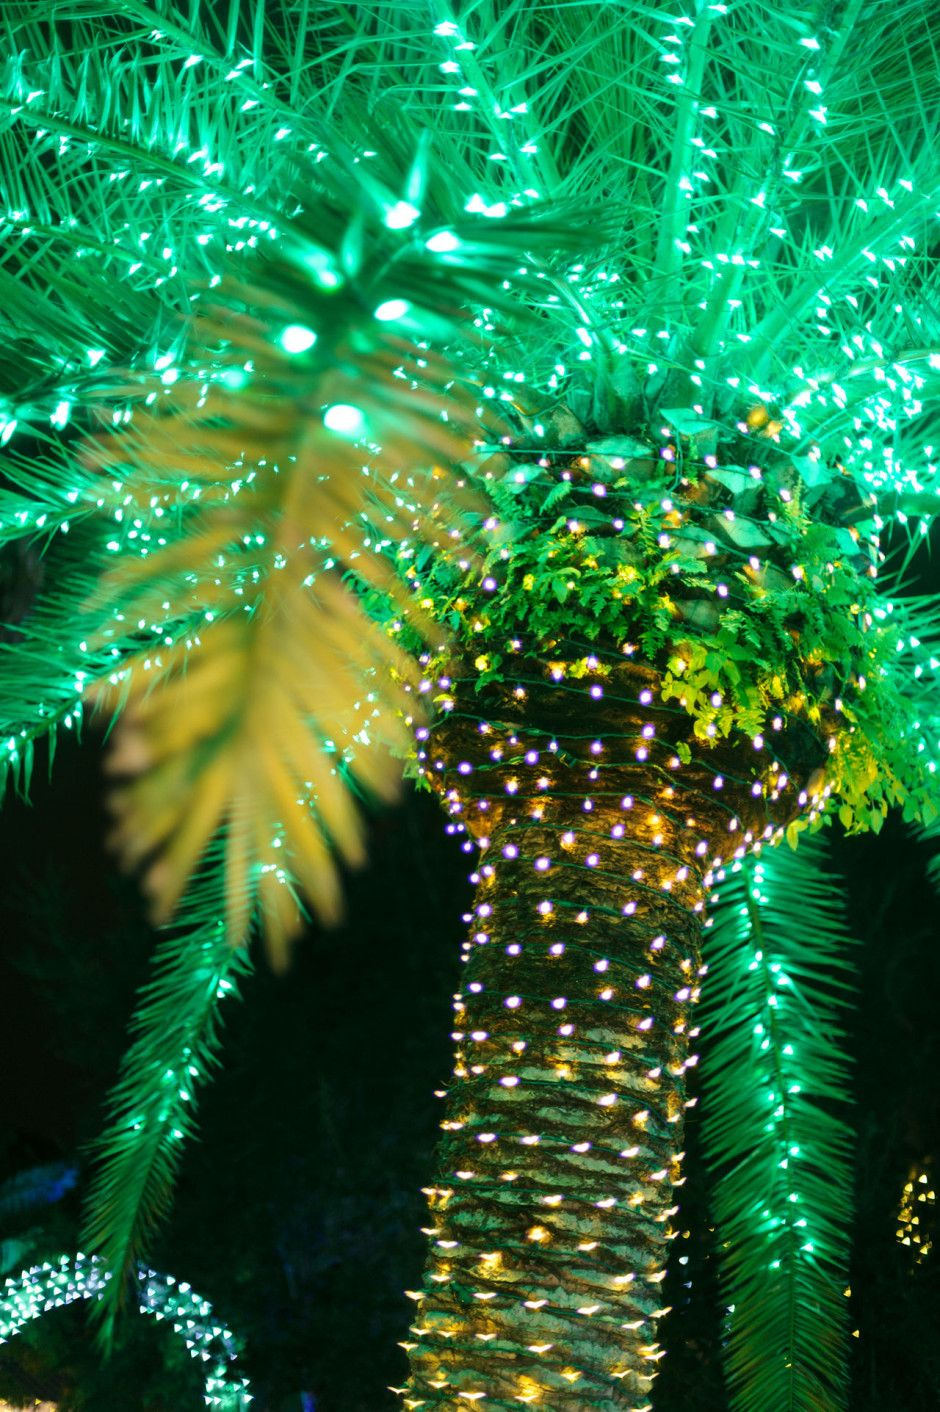 8 Reasons You Should Be Spending The Holidays On The Beaches Of Fort Myers Sanibel Christmas Tree Lighting Christmas Tree Photography Outdoor Christmas Tree